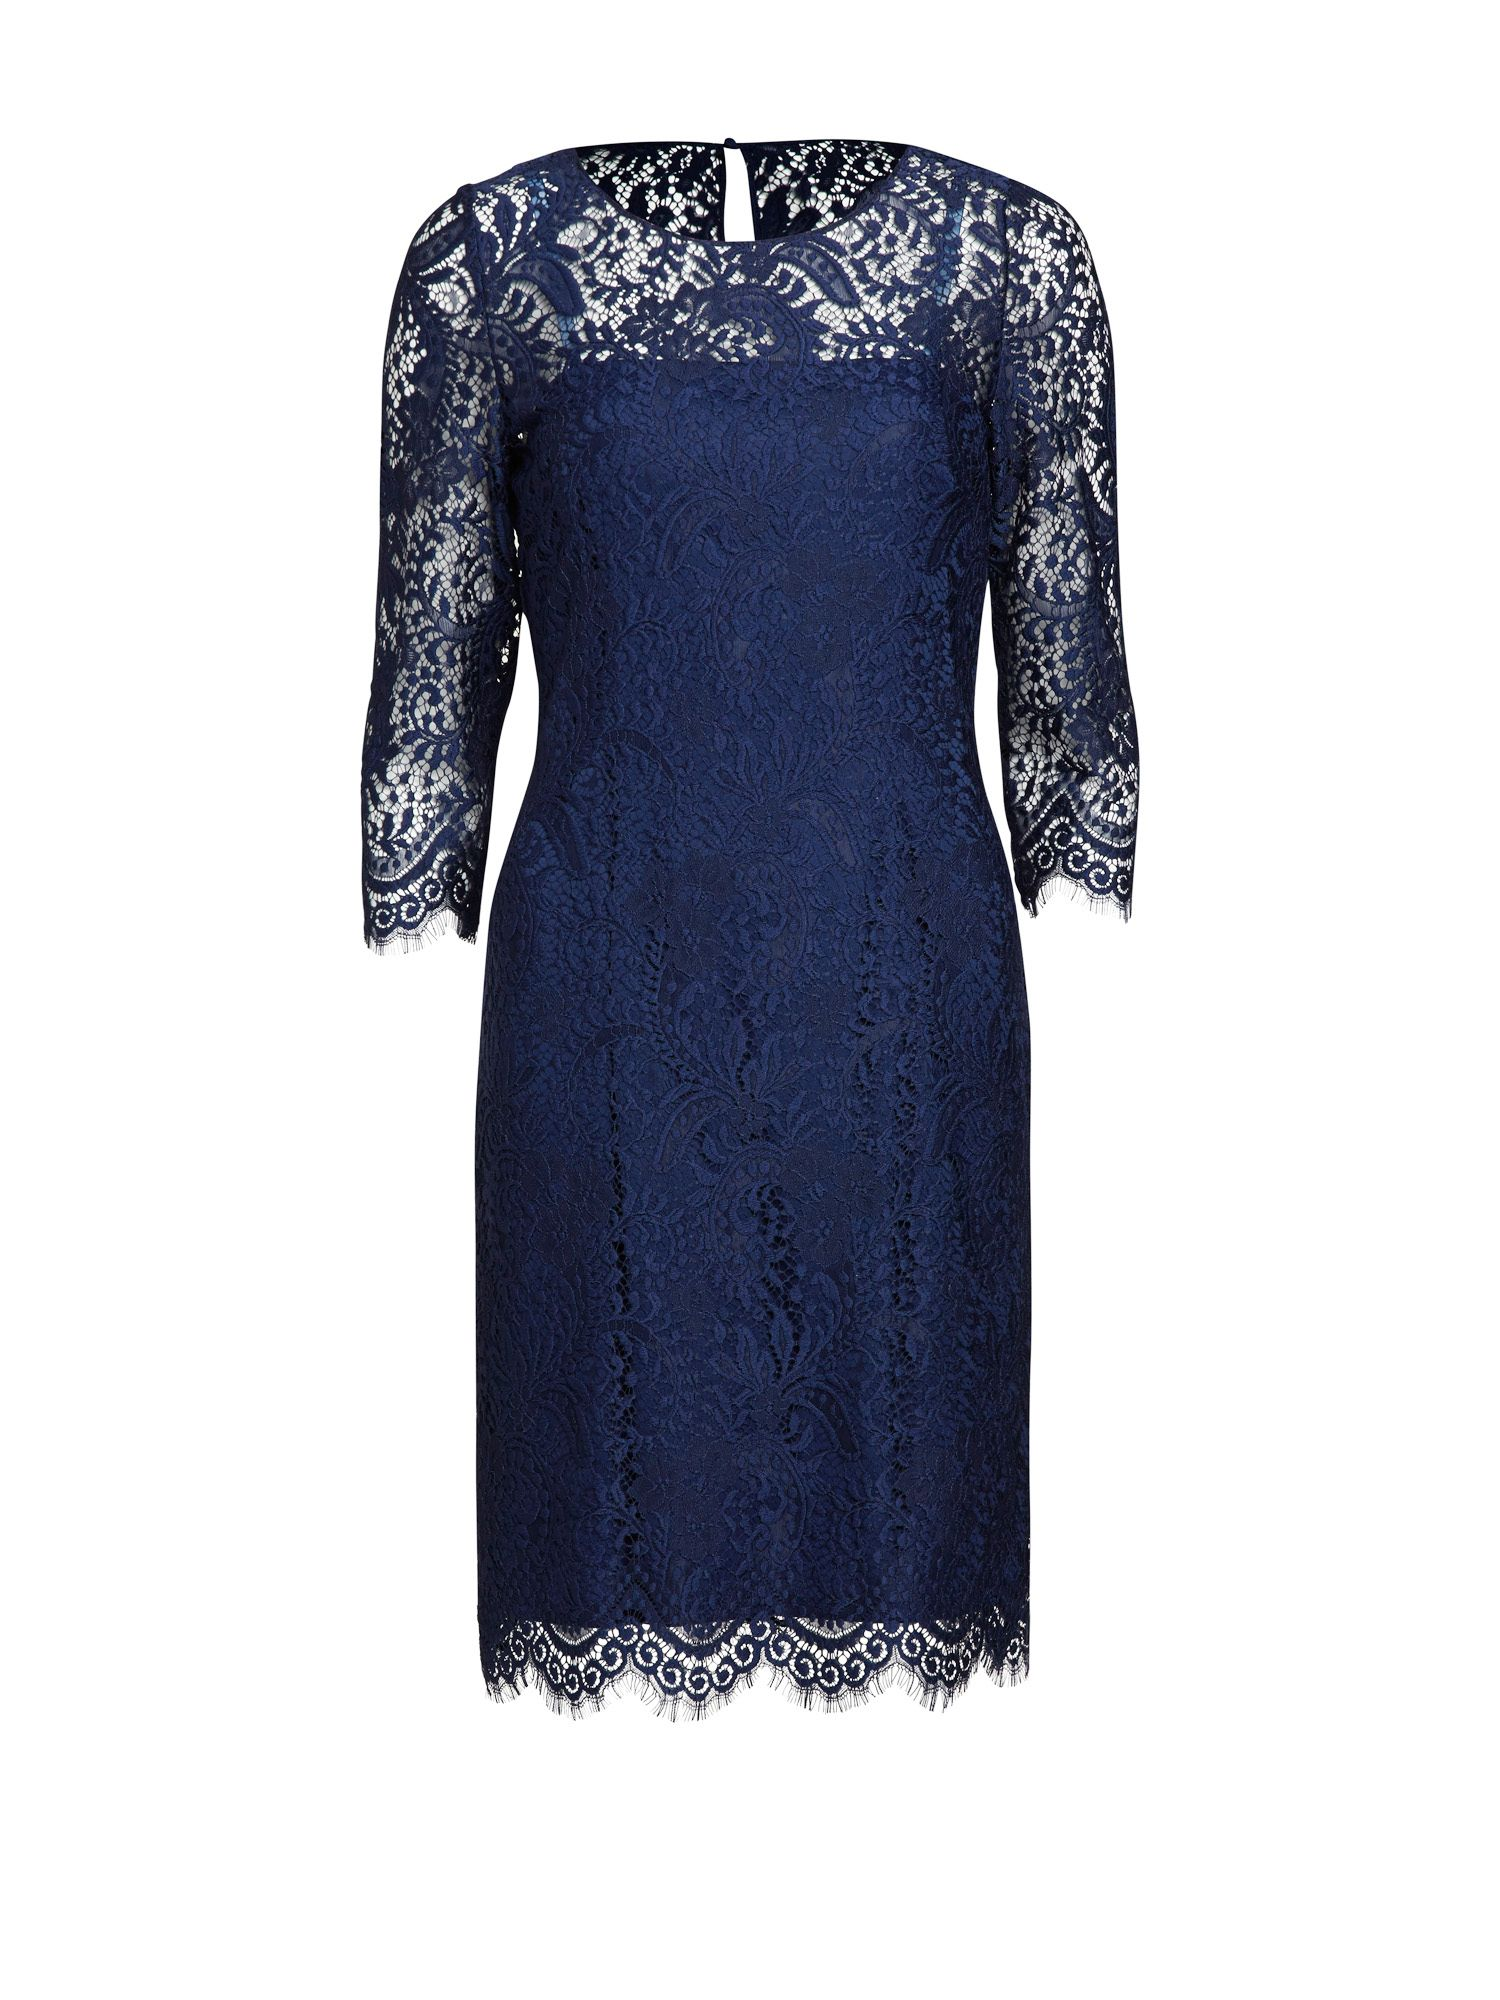 Gina Bacconi Floral scroll fringed scallop lace dress, Navy